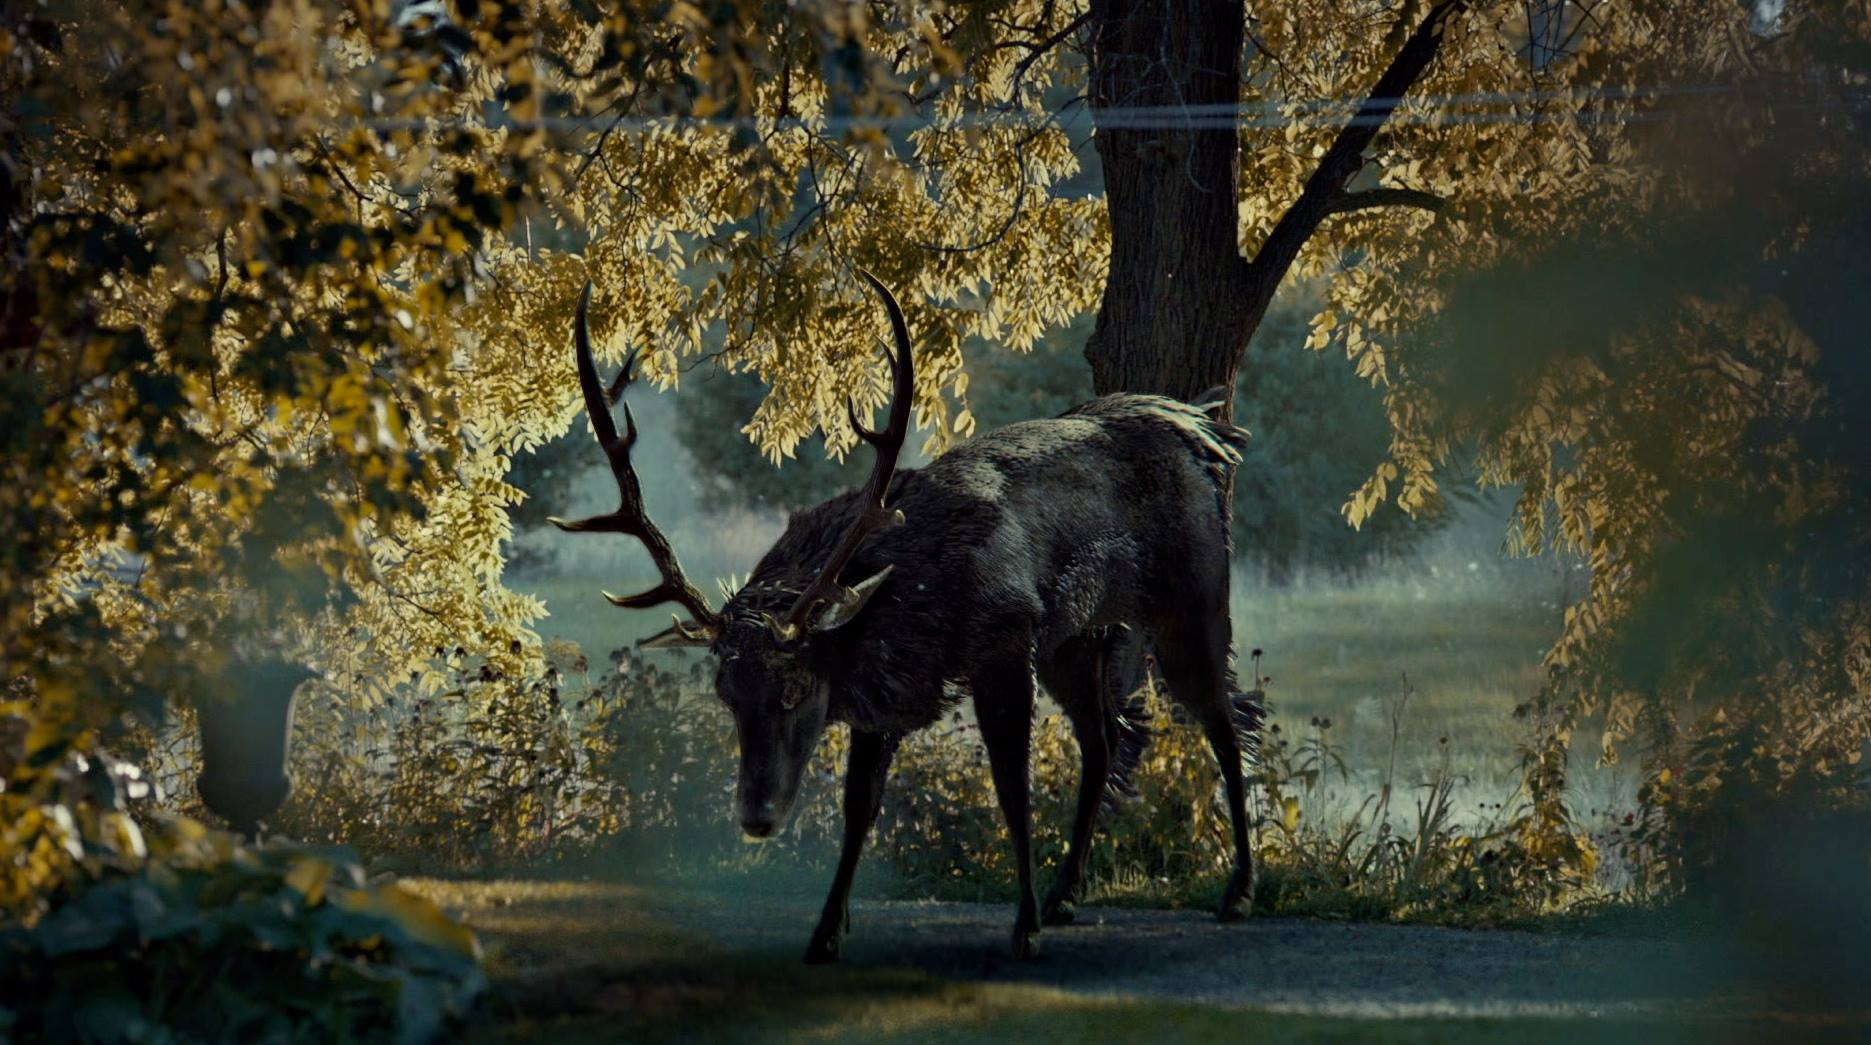 True Detective Wallpaper Iphone Hannibal Wallpapers High Quality Download Free